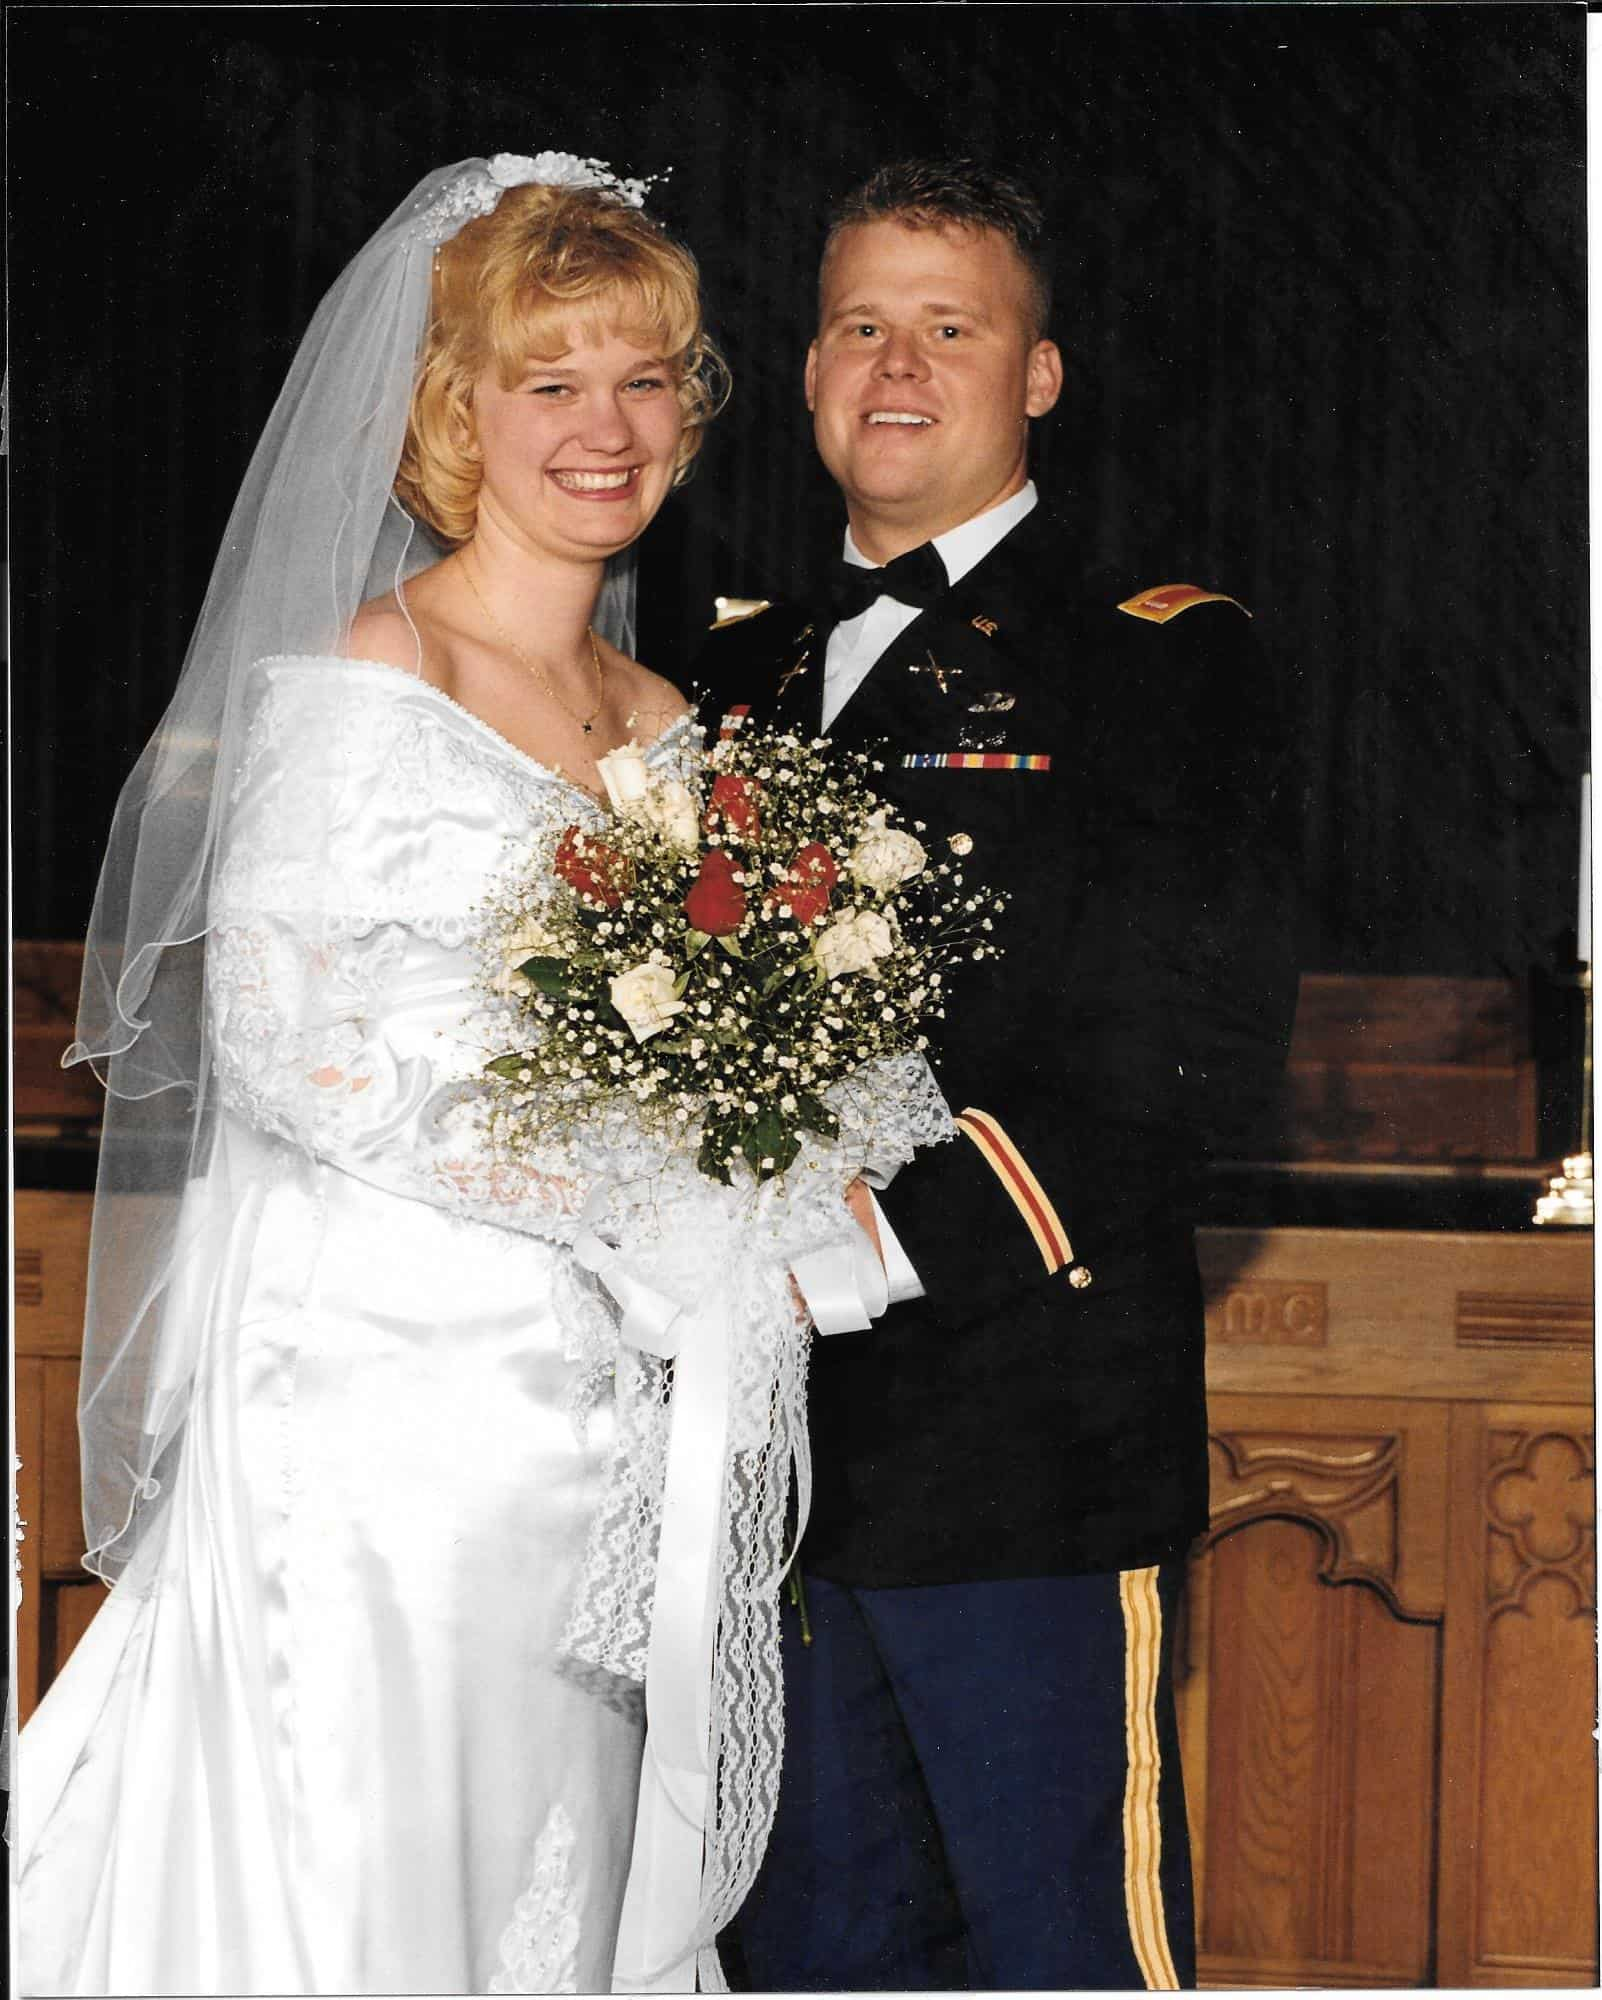 M10j What I Learned From Two Military Weddings One Year